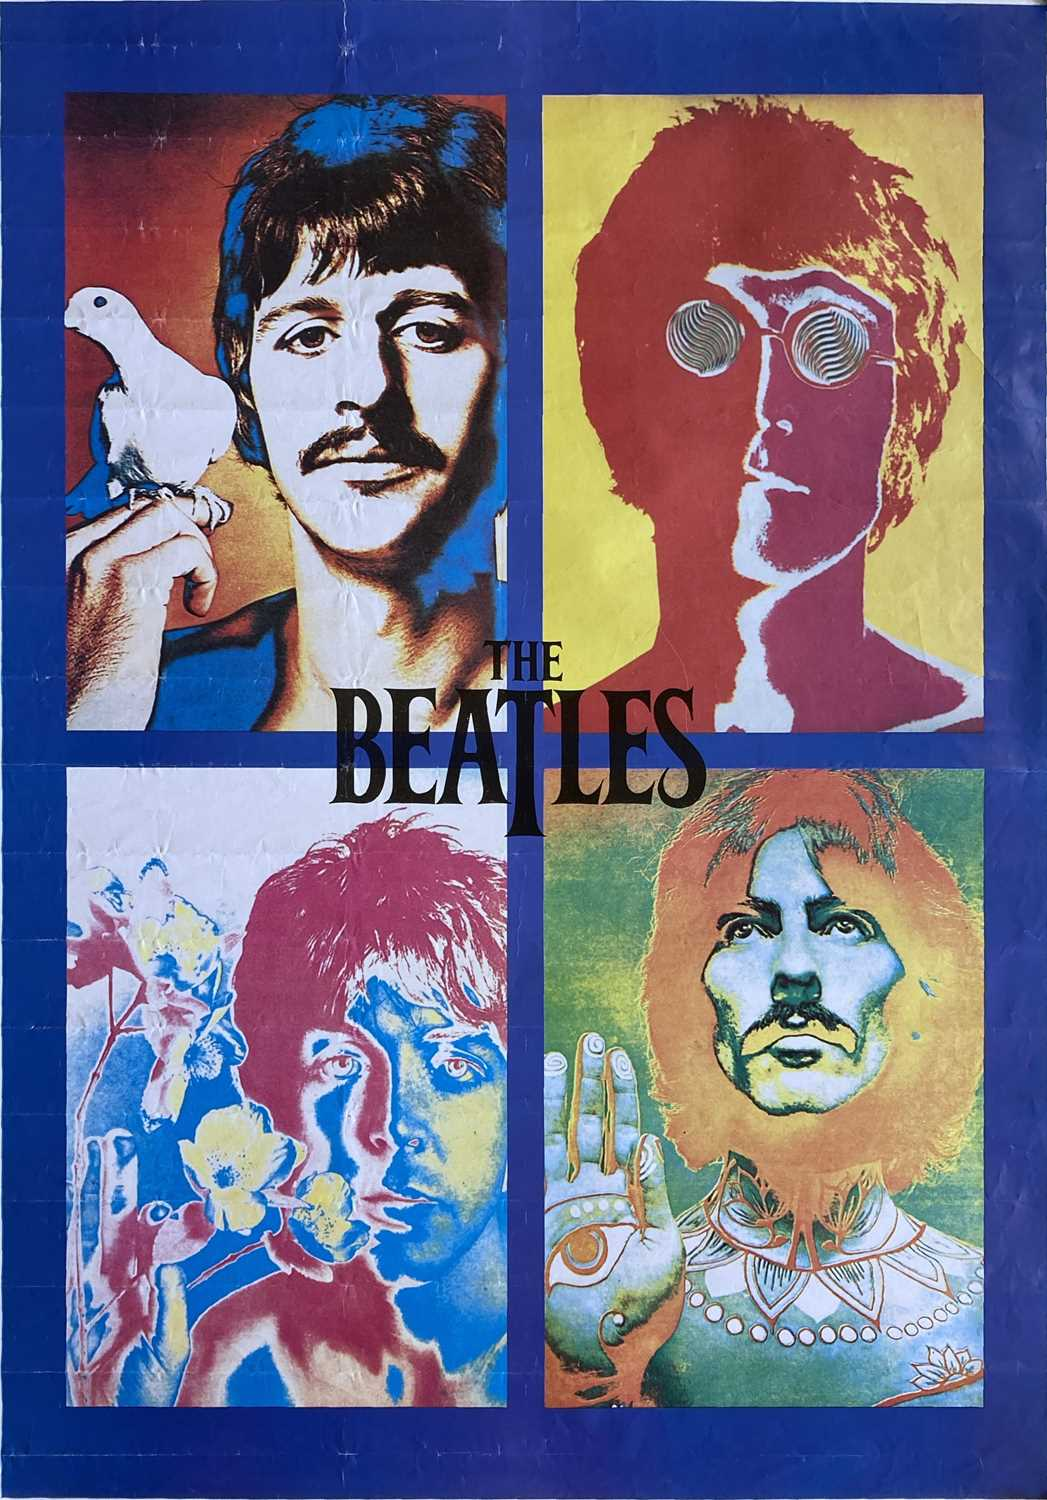 BEATLES / ROLLING STONES POSTERS. - Image 2 of 8